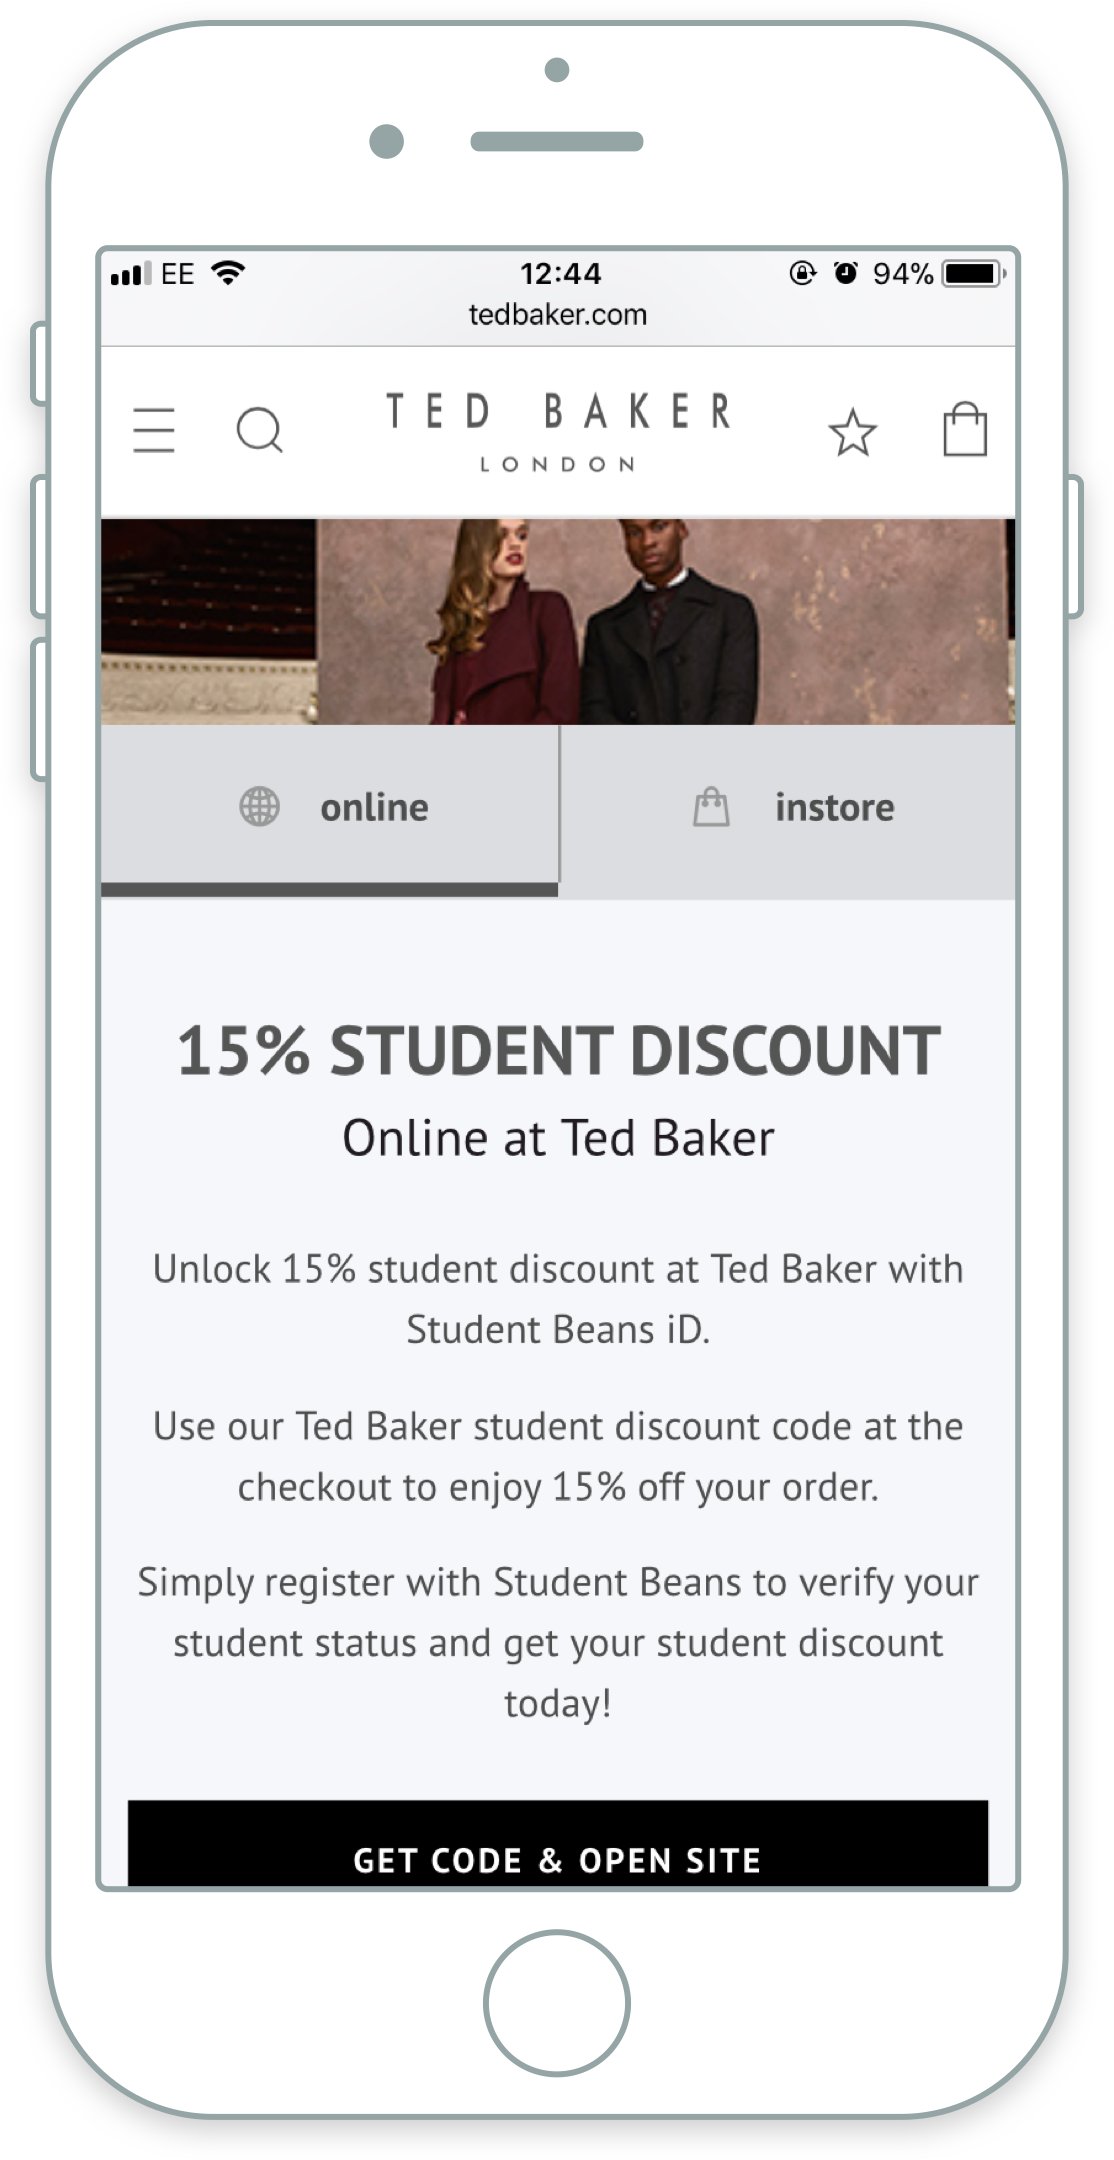 Run a Discount Online - For e-commerce retailers we provide a plug and play tool called Connect, which enables students to verify and access your discount directly via your own website.